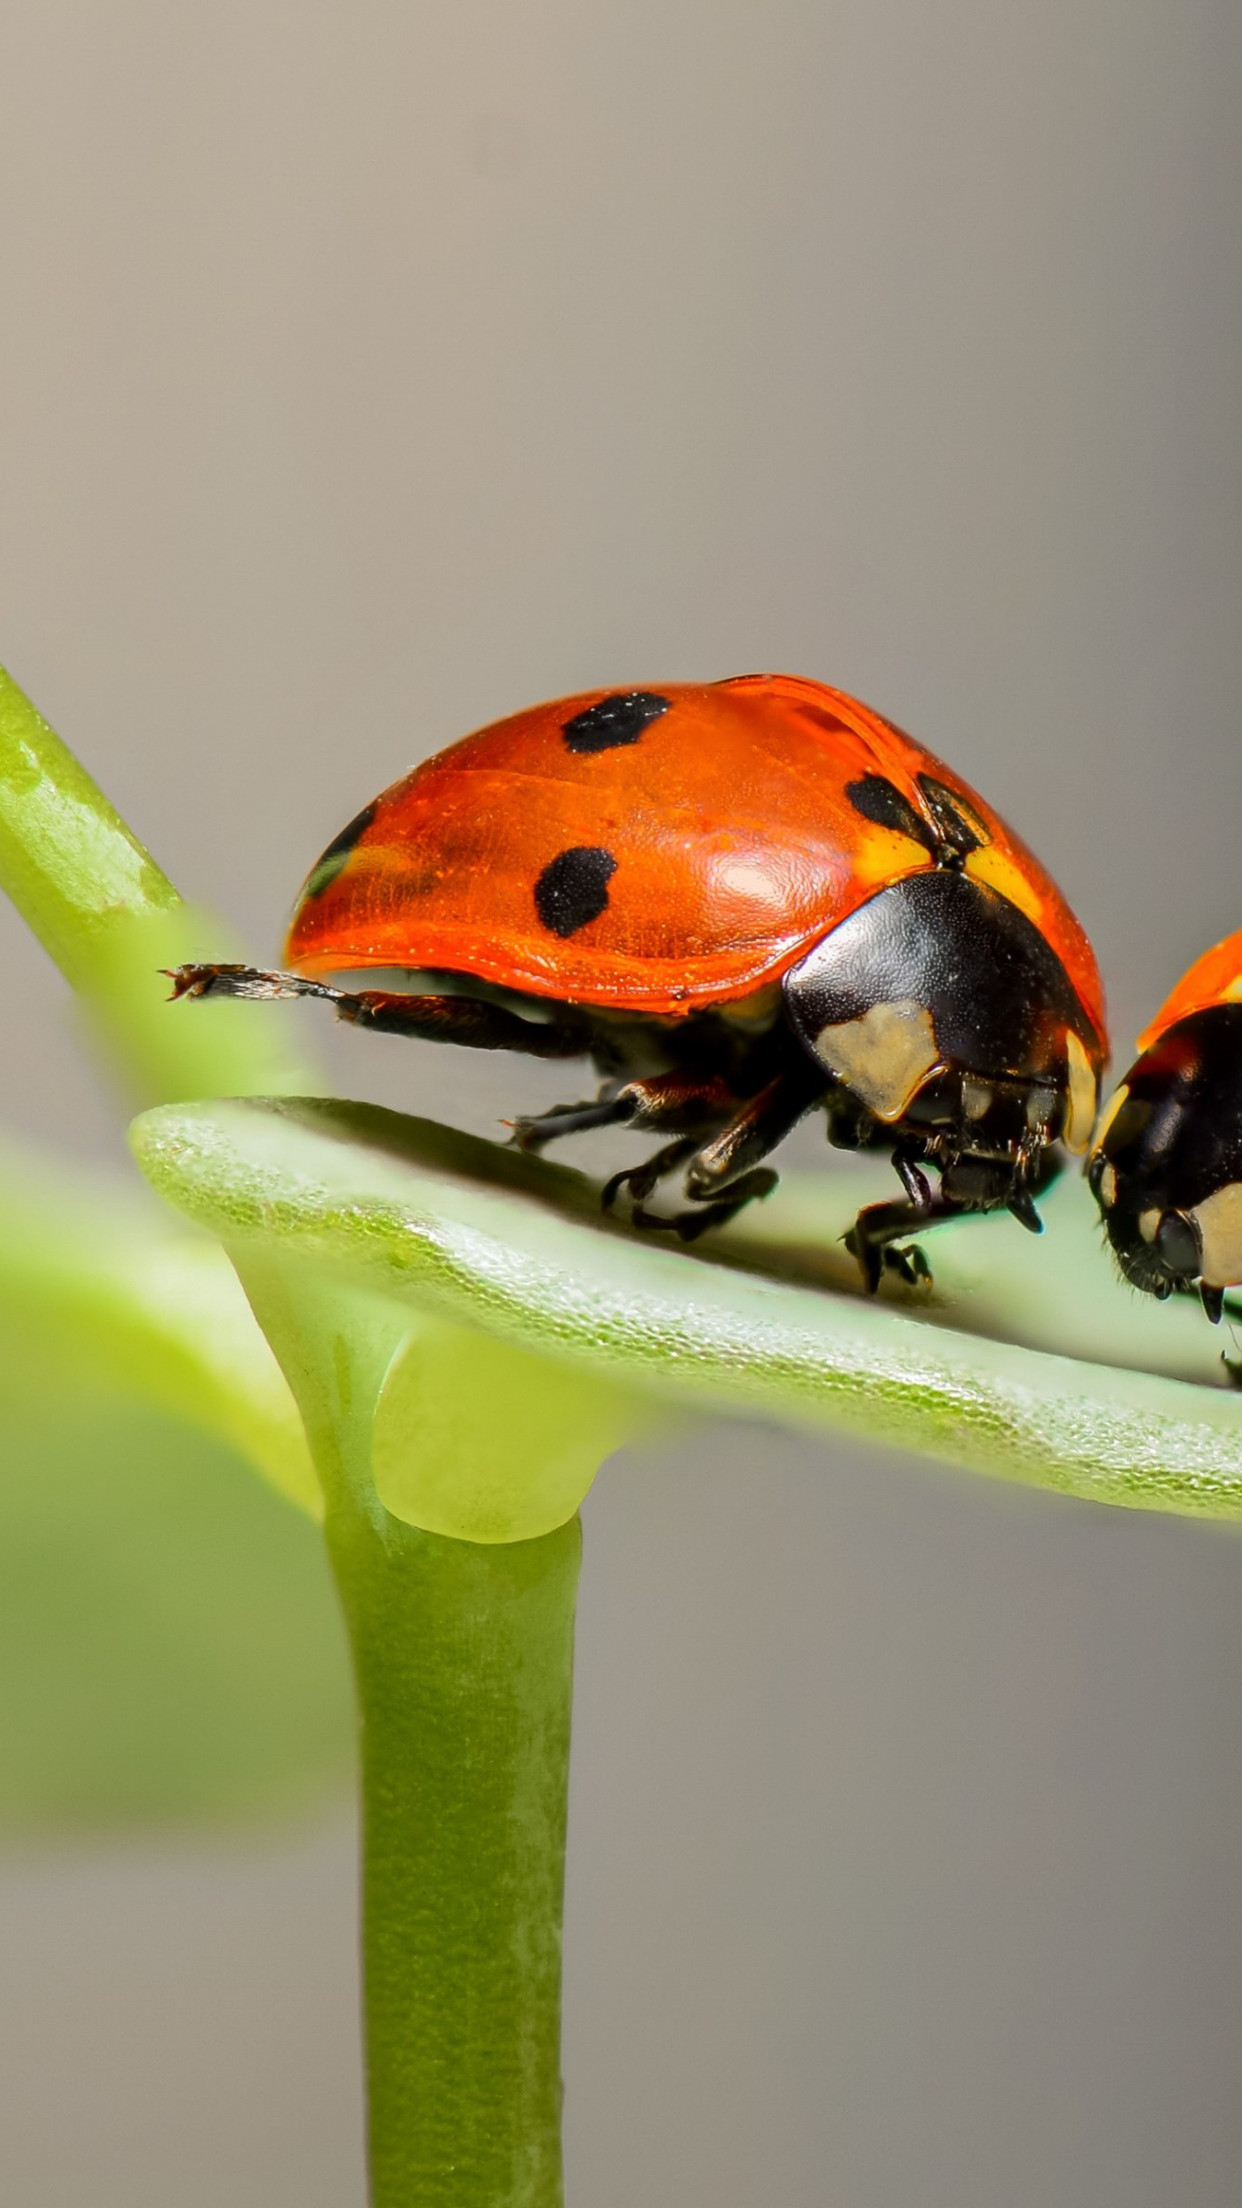 Ladybird, the insect | 1242x2208 wallpaper